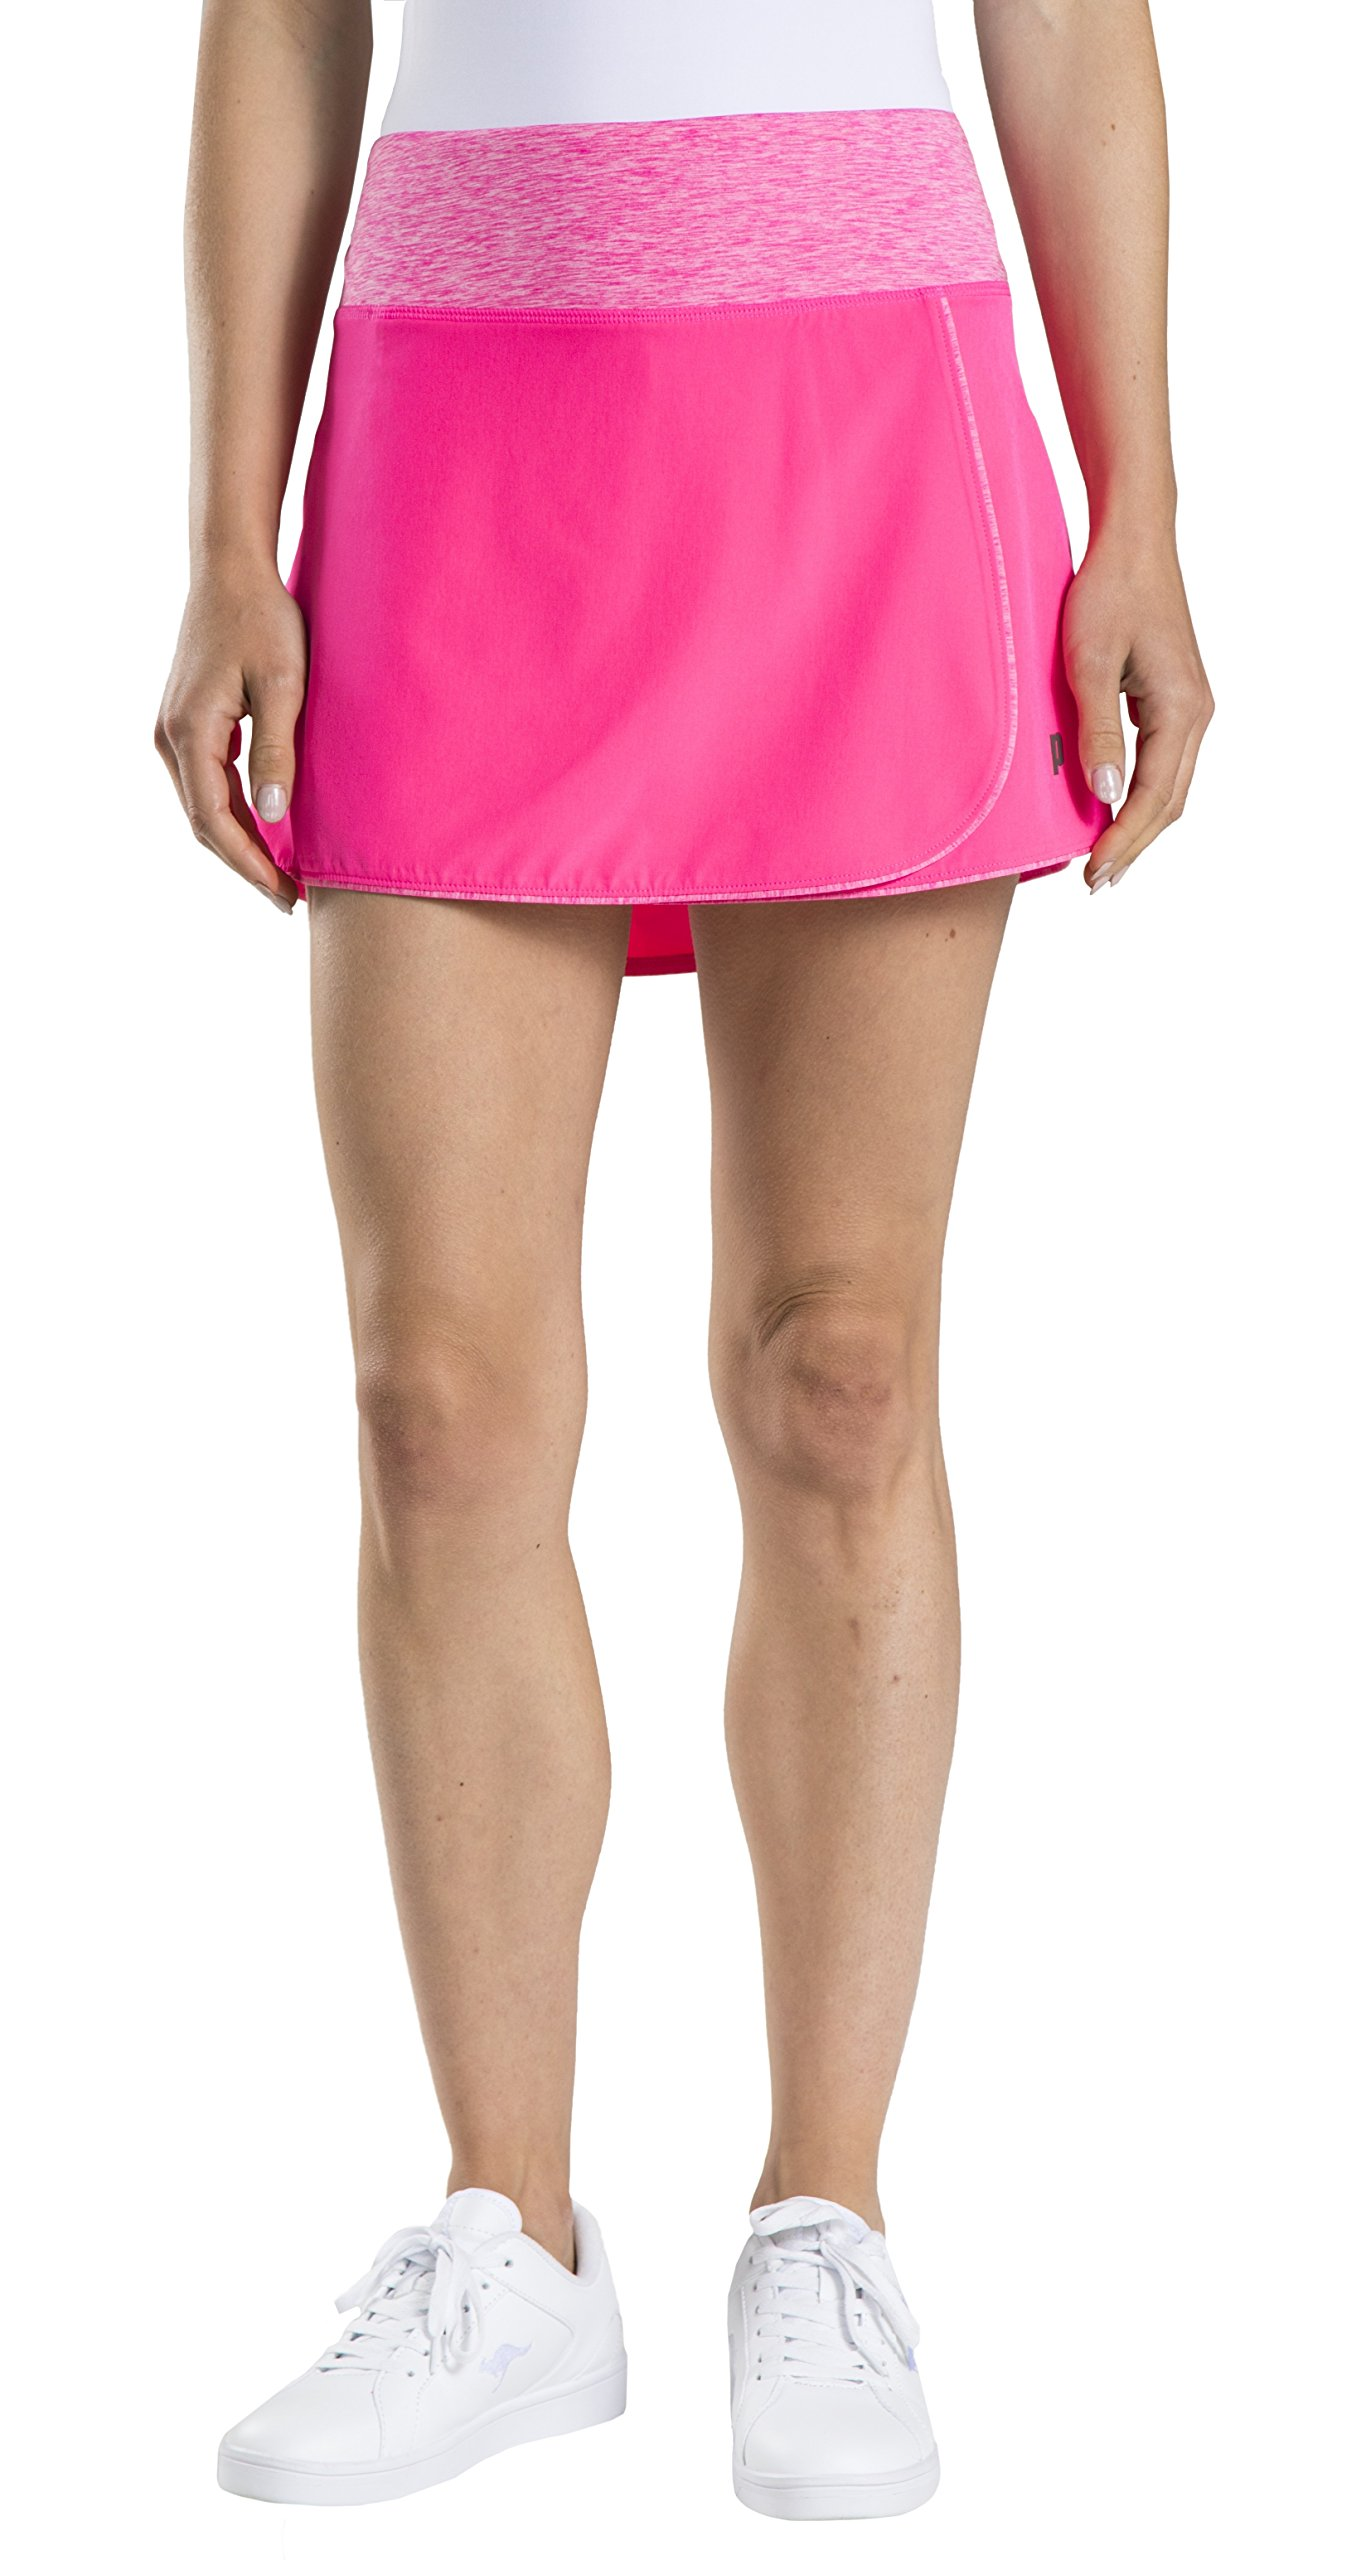 Prince Women's Stretch Woven Wrap Tennis Skort, Cosmos Pink/Heather, Large